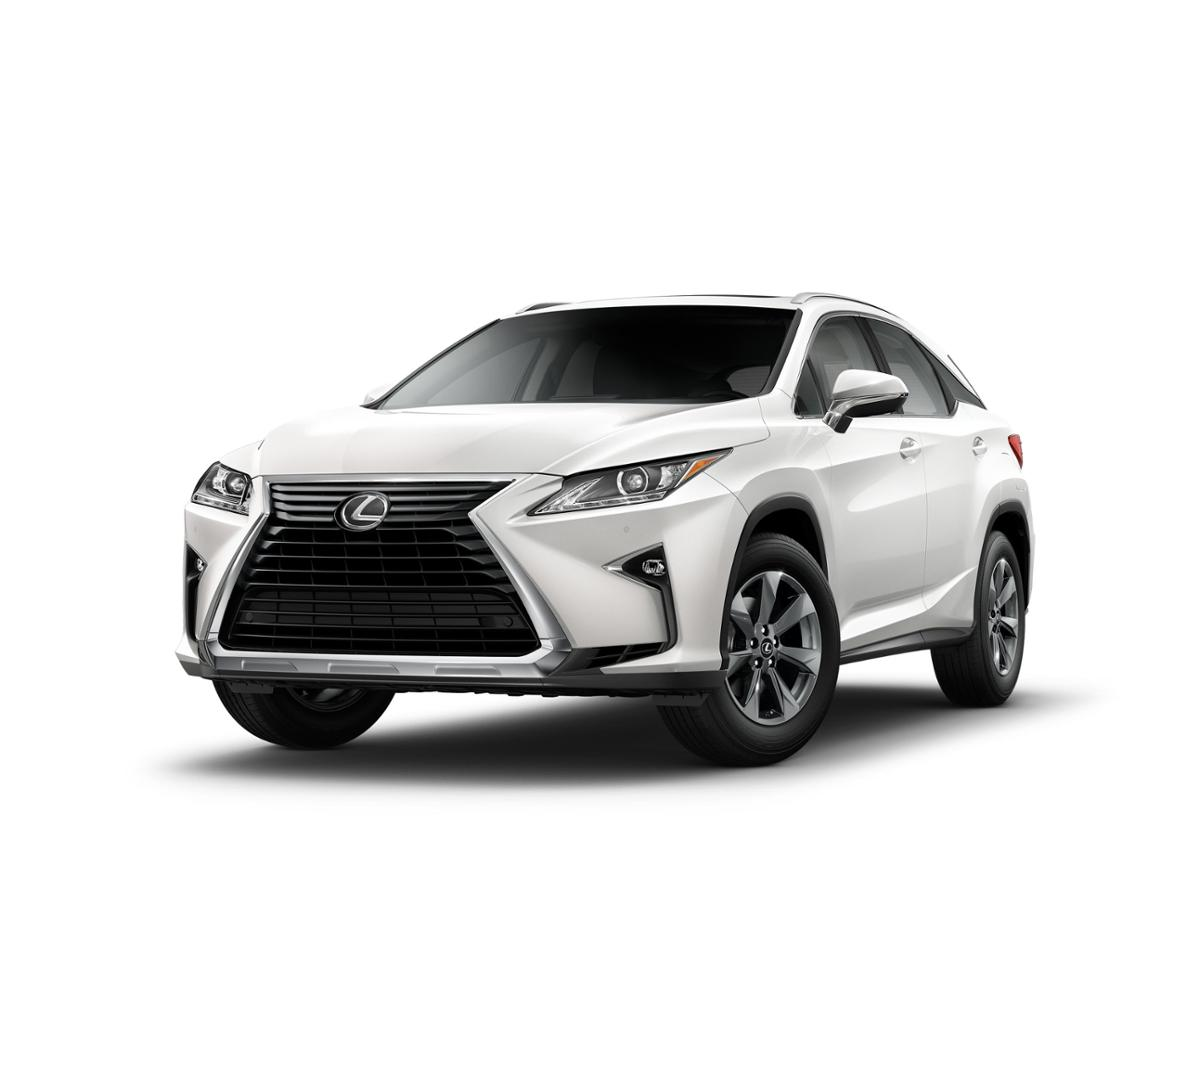 2018 lexus rx 350 for sale in duluth 2t2zzmca2jc093275 hennessy lexus of gwinnett. Black Bedroom Furniture Sets. Home Design Ideas